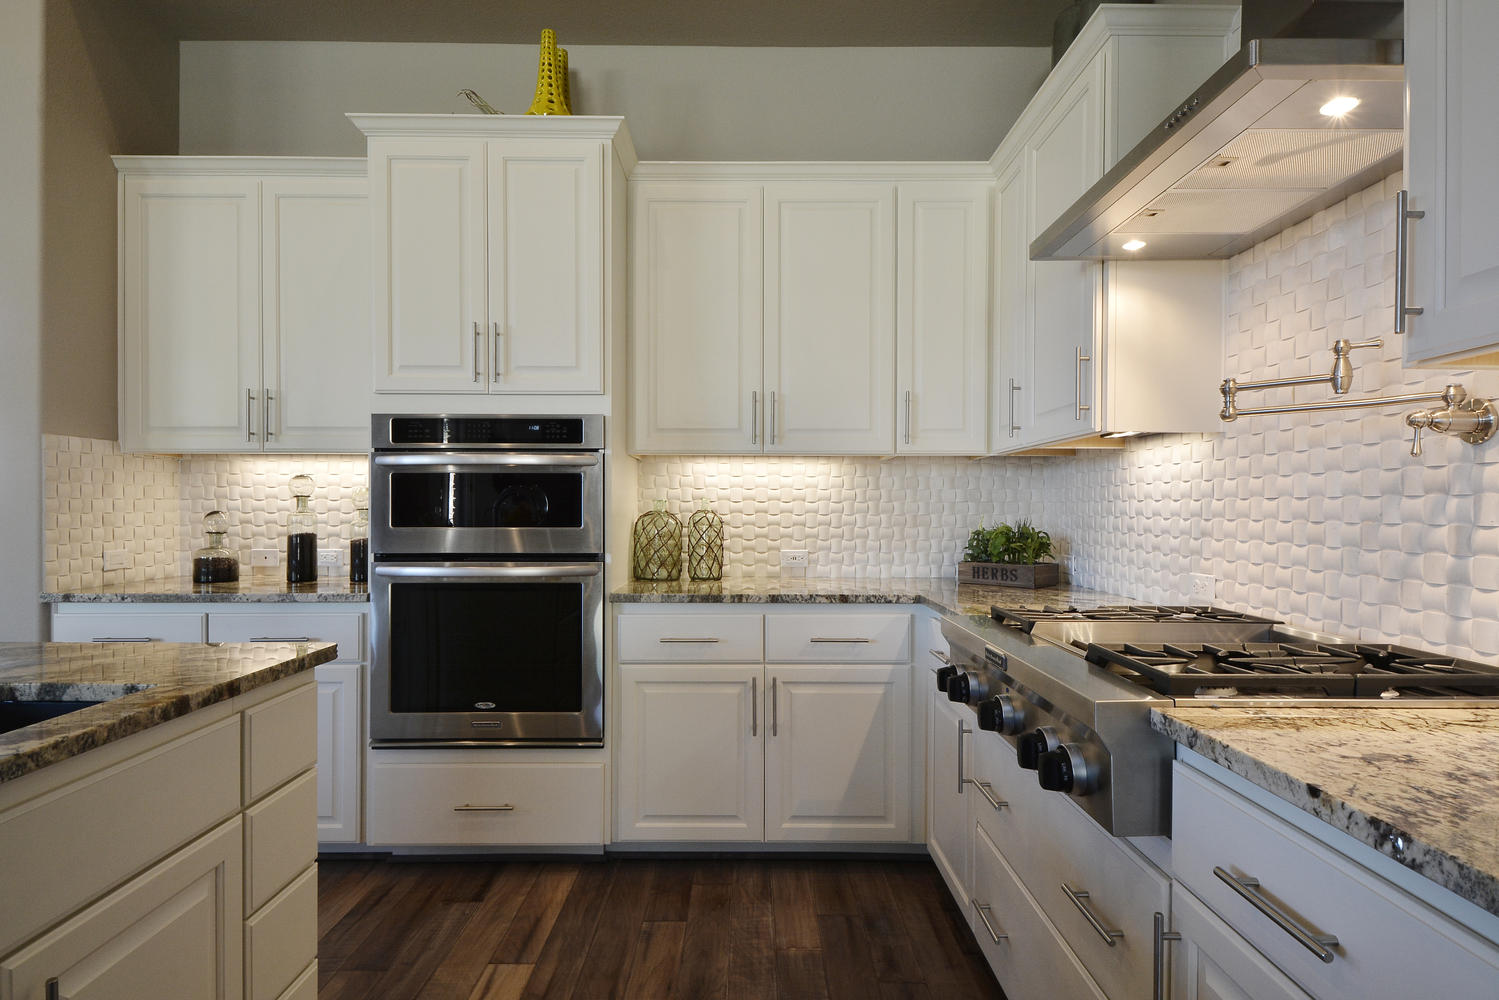 White kitchen cabinets burrows cabinets central texas for White kitchens cabinets